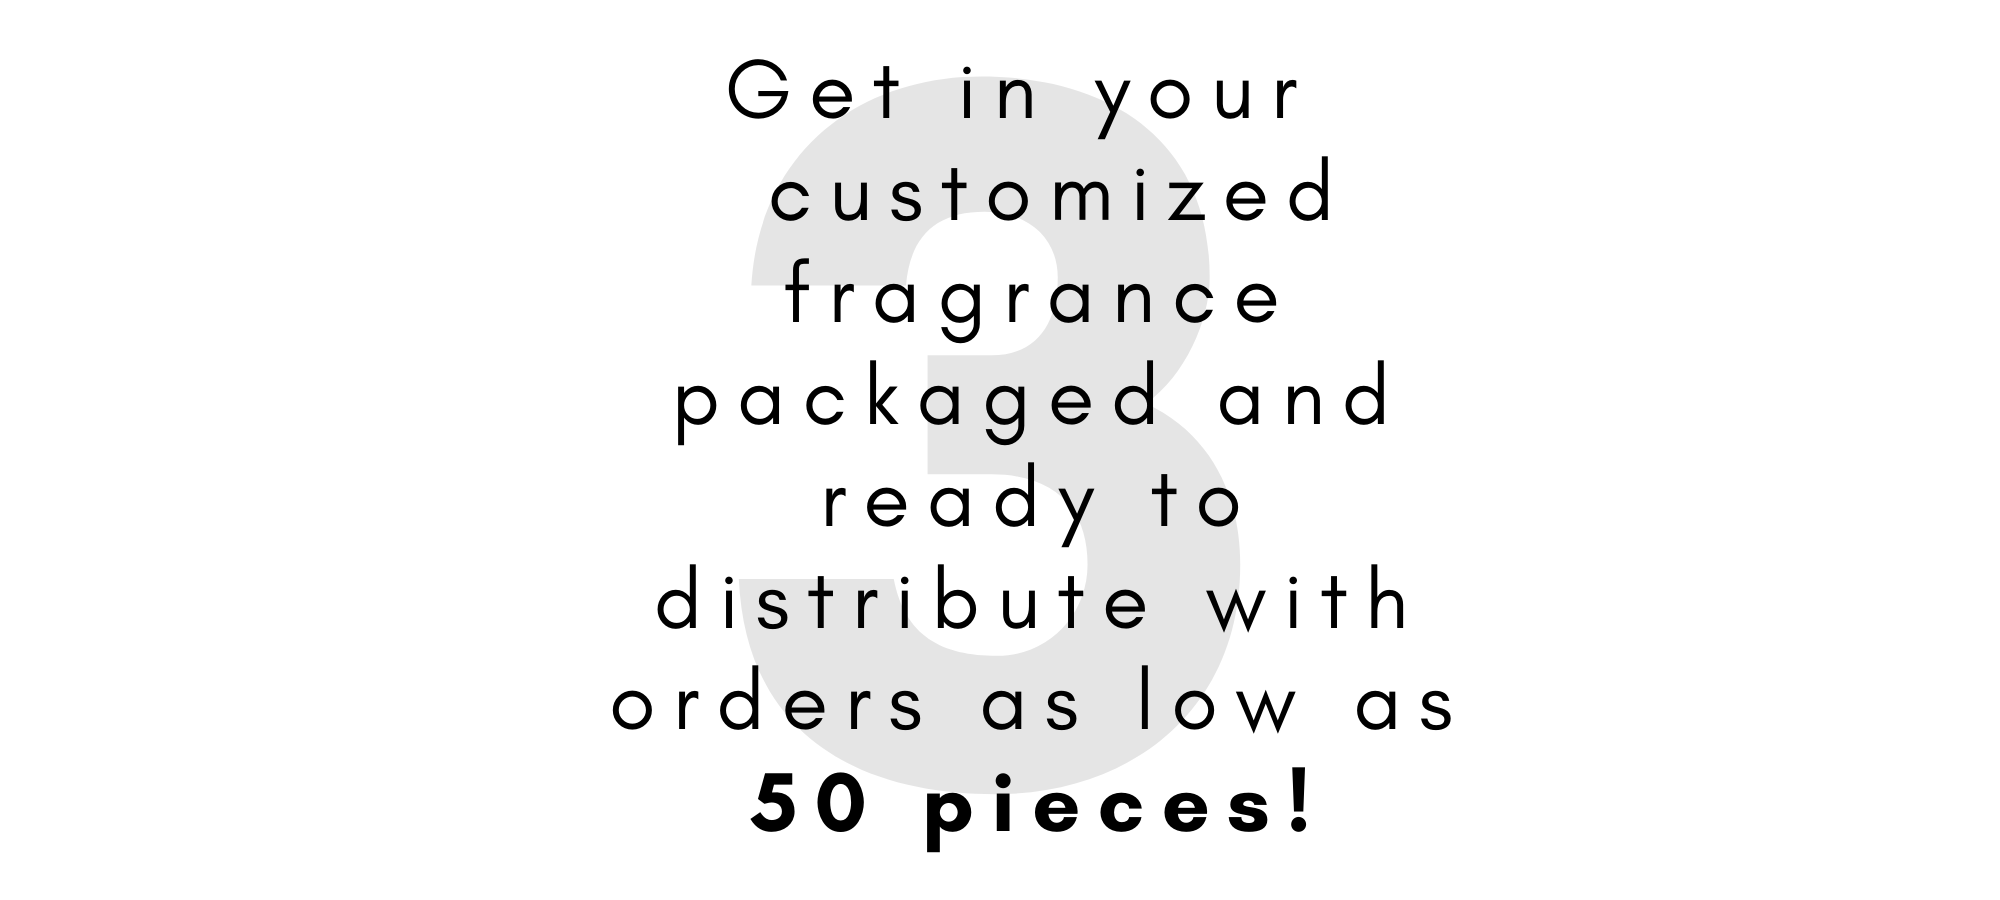 Receive your customized fragrance.